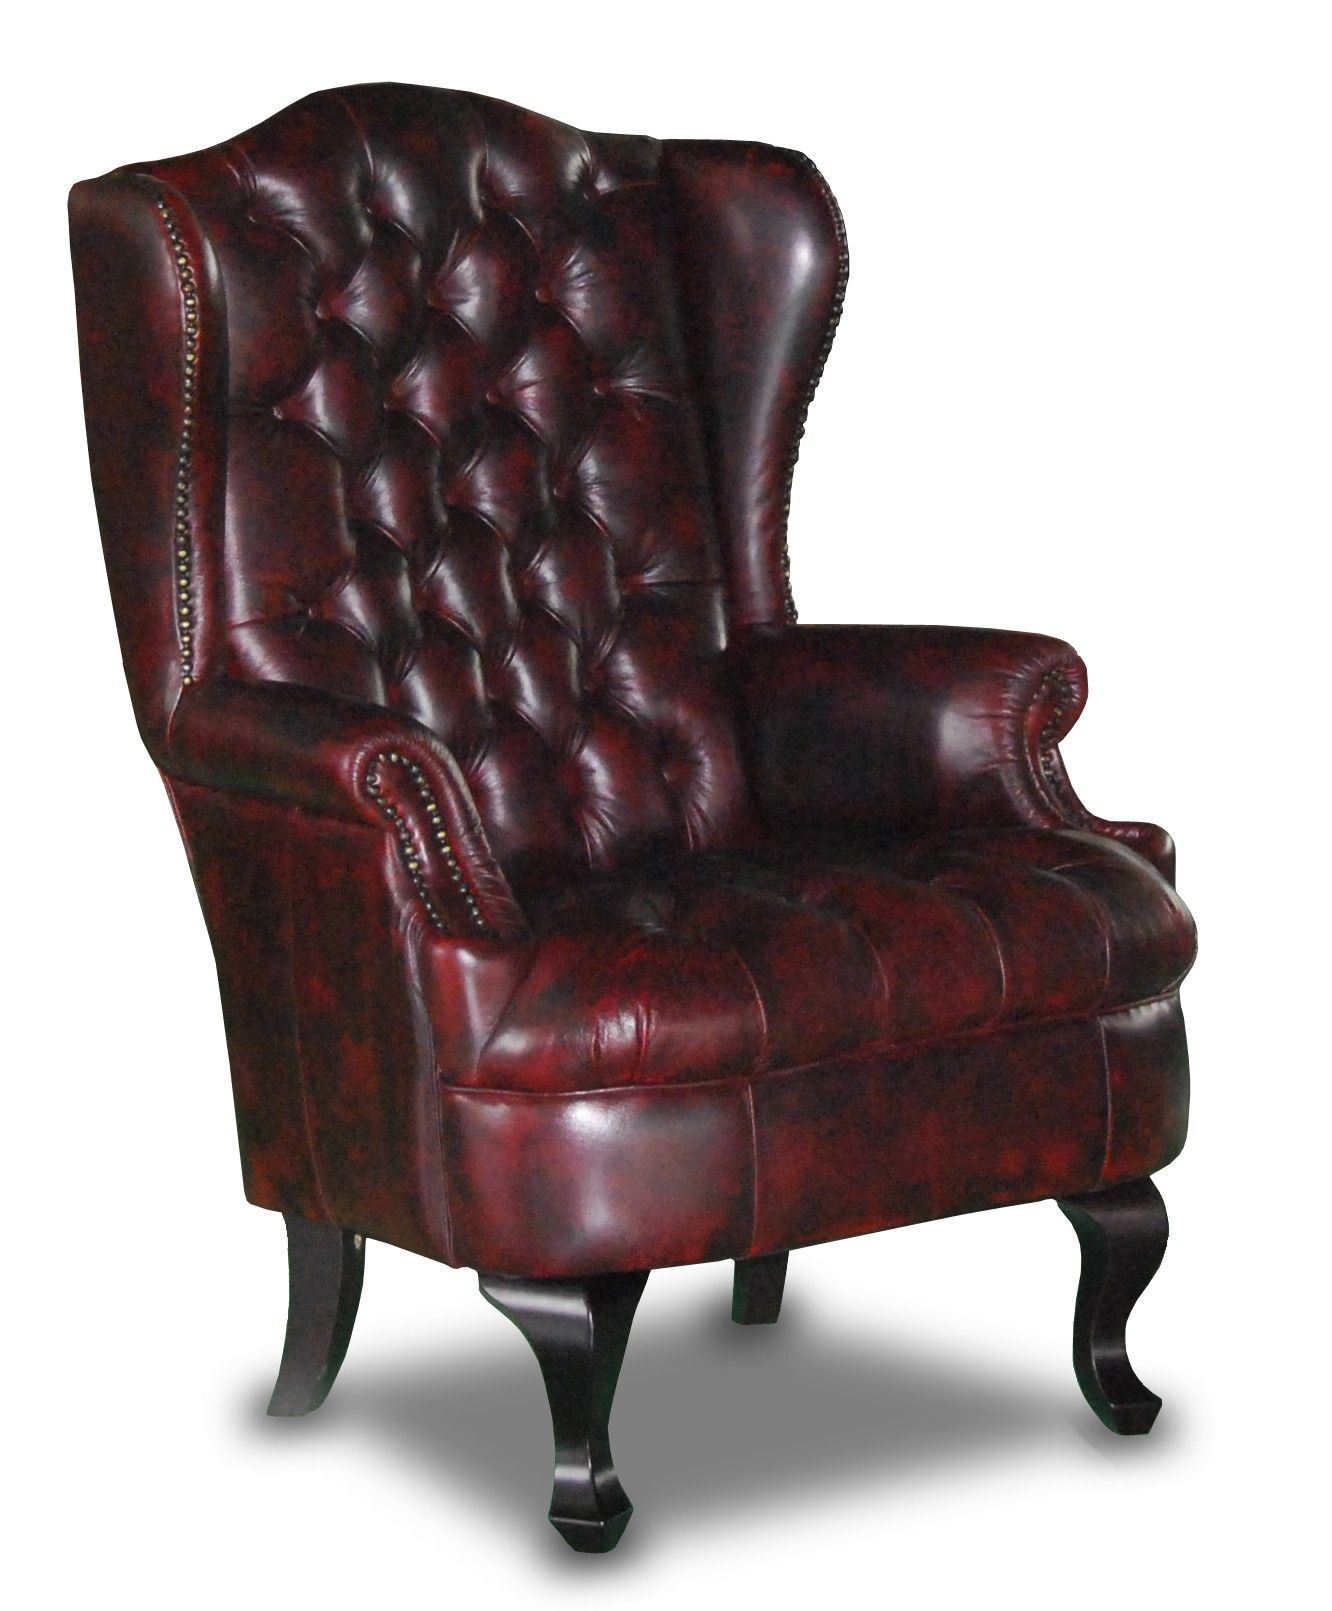 Skull Sessel Chesterfield Leather Chair Google Search Skulls And Seams